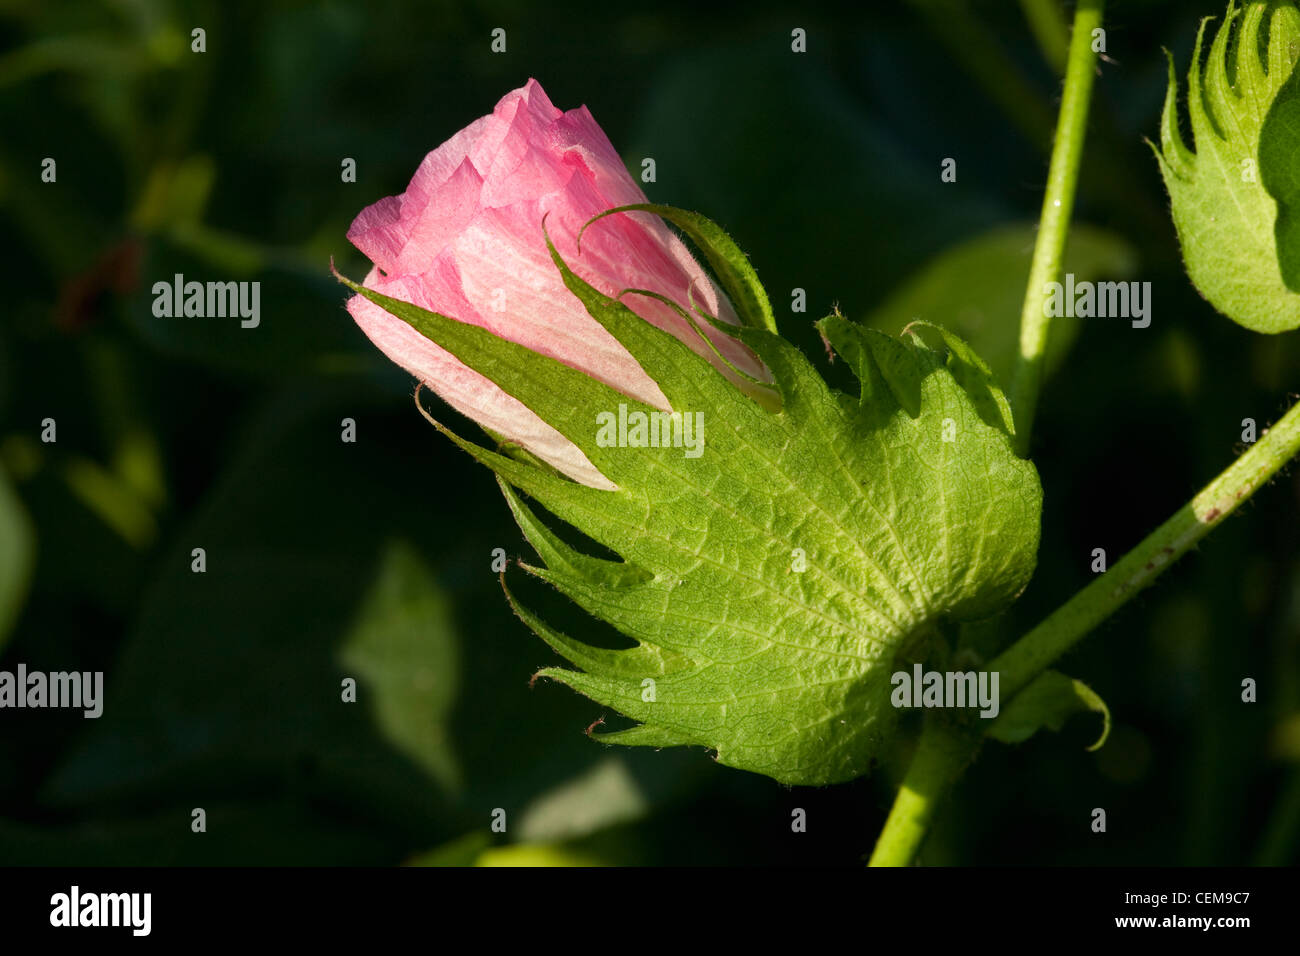 Agriculture - Closeup of a pink blossom on a mid growth cotton plant / Arkansas, USA. - Stock Image